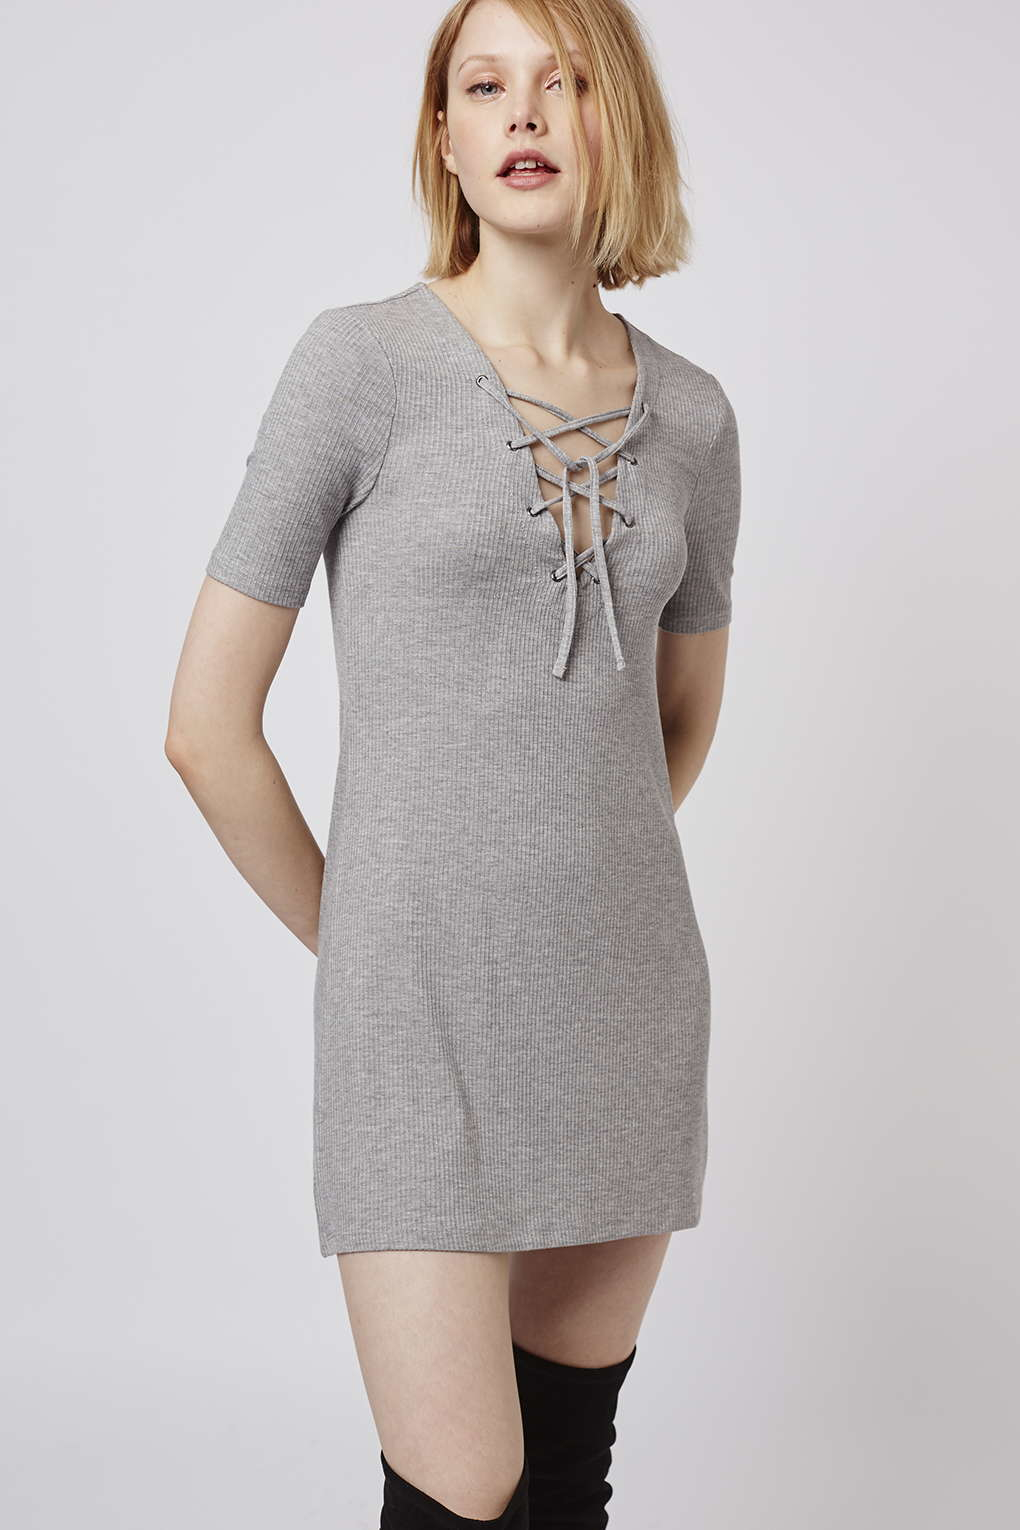 Lyst - TOPSHOP Petite Lace Up Tunic Dress in Gray e05b76aa8